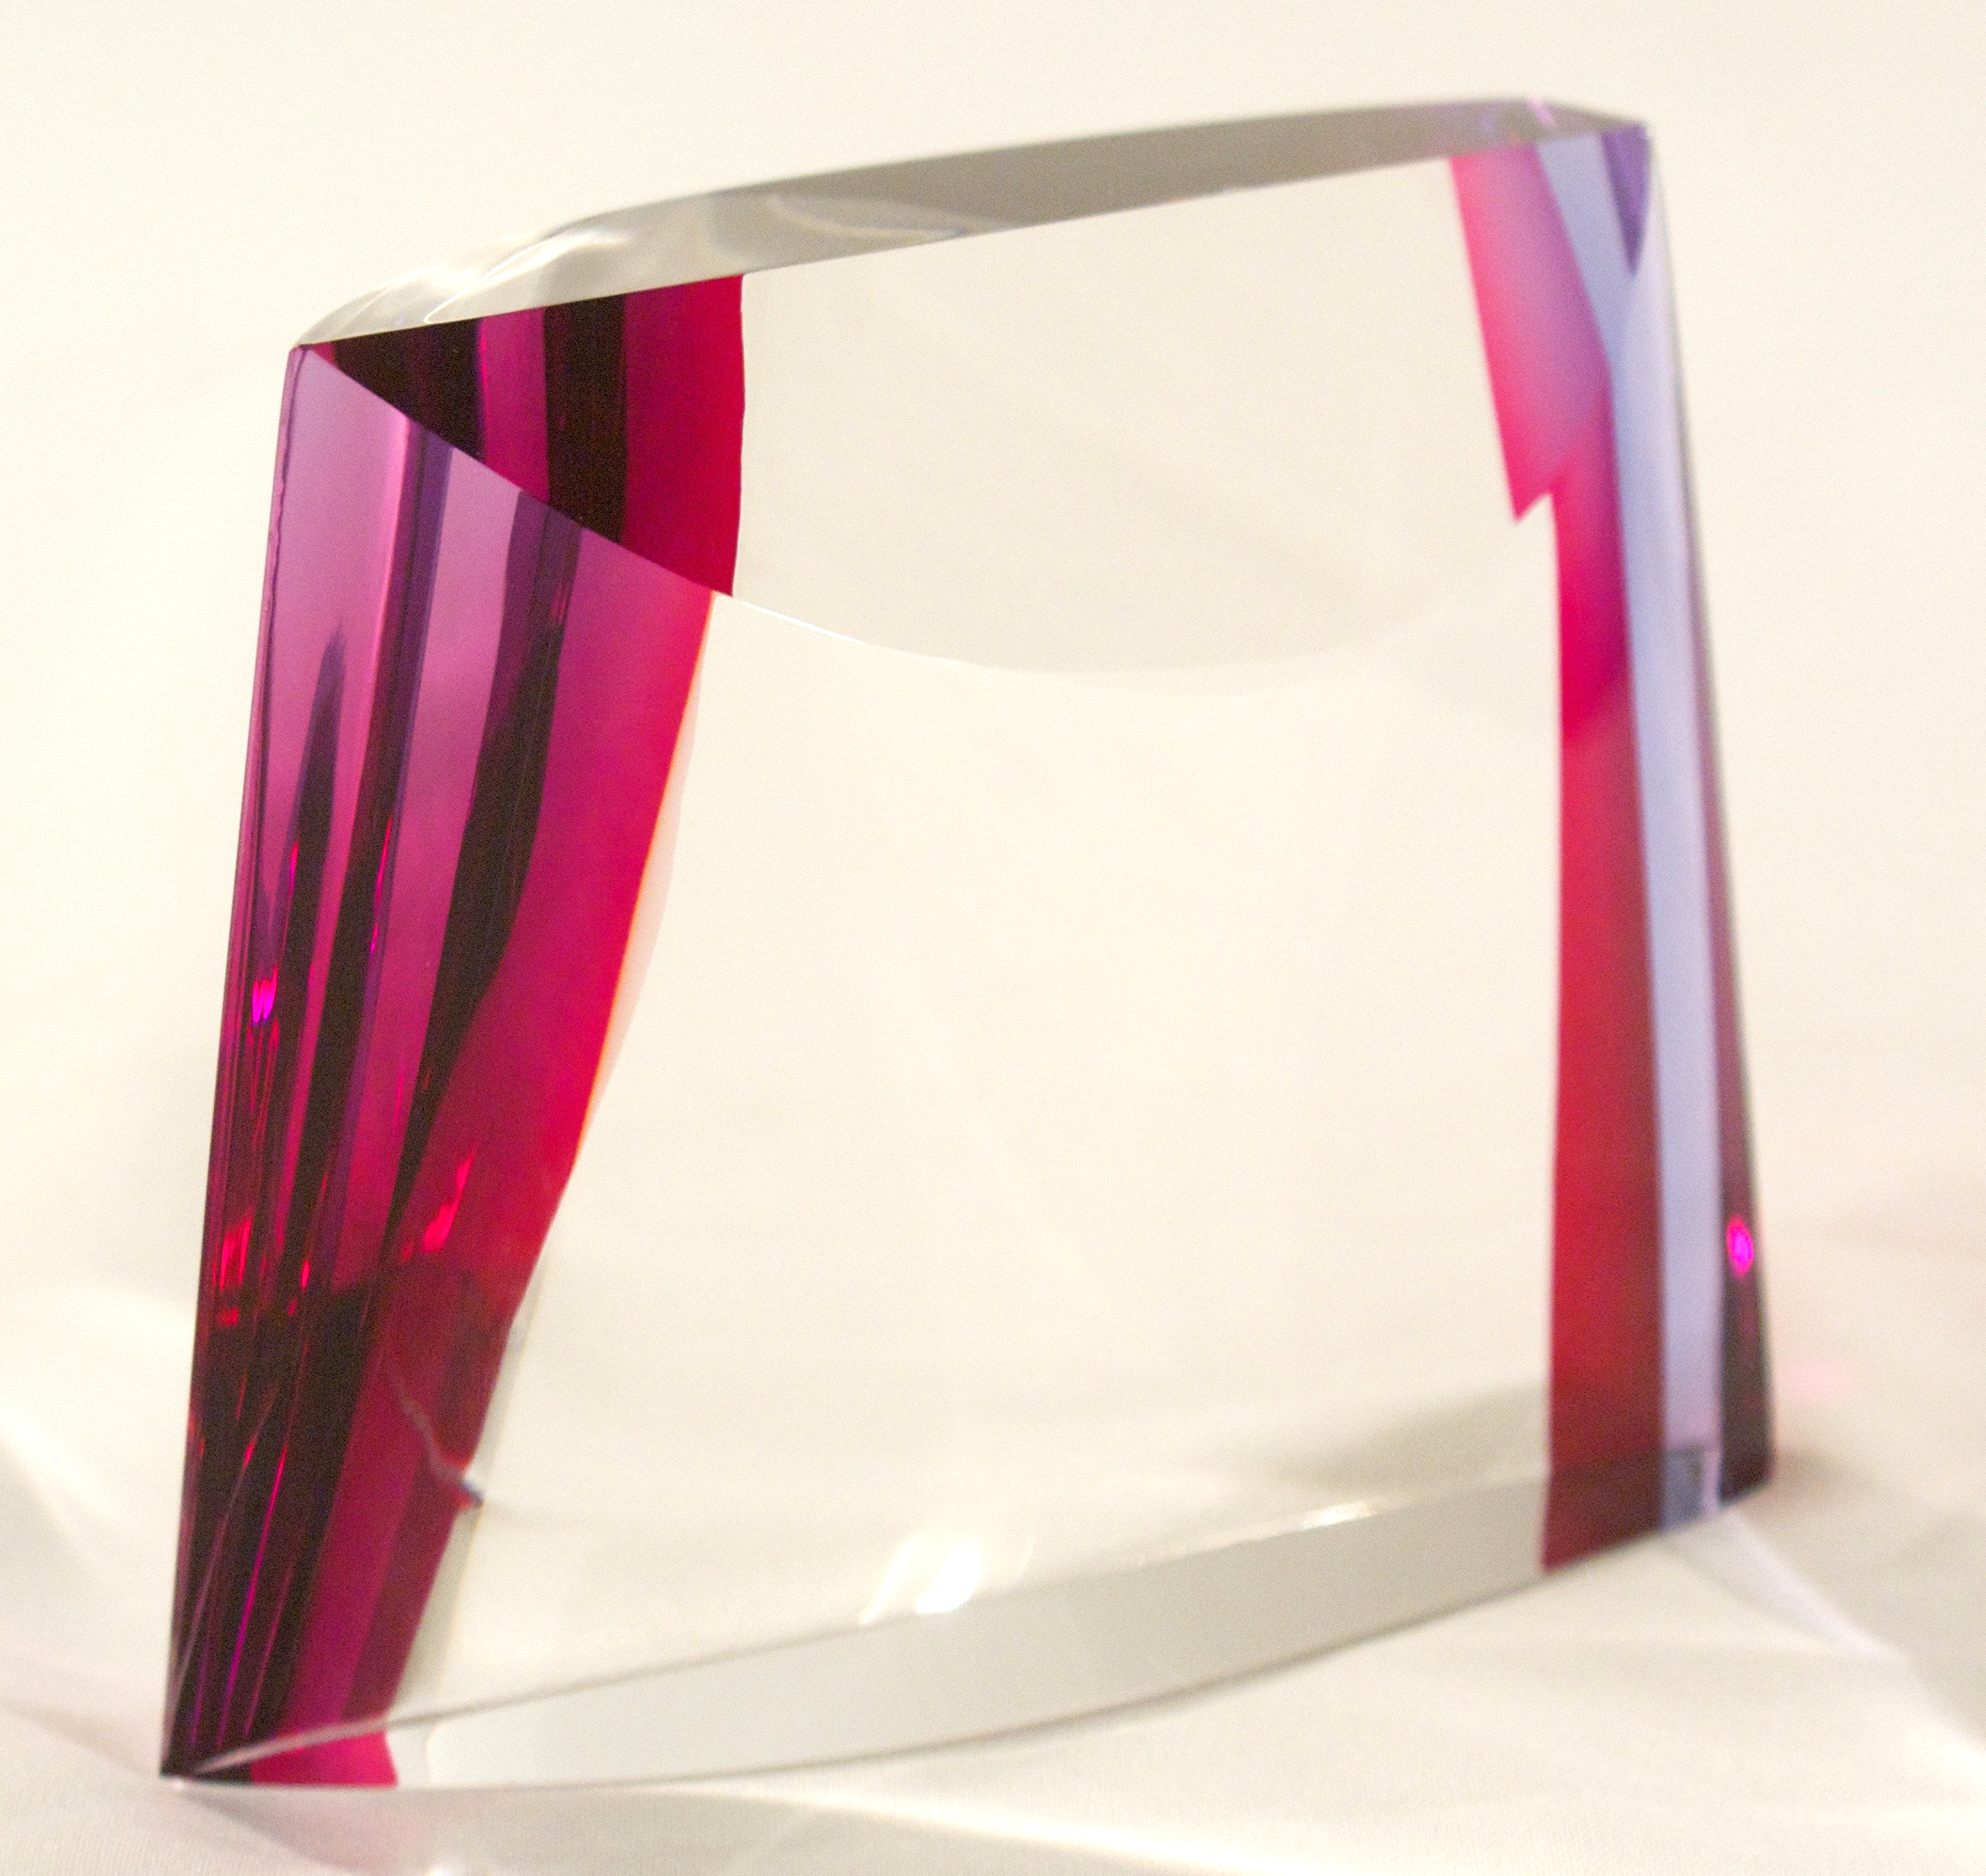 cold-worked optical glass  assembled  color is in the epoxy  2014  artist's collection